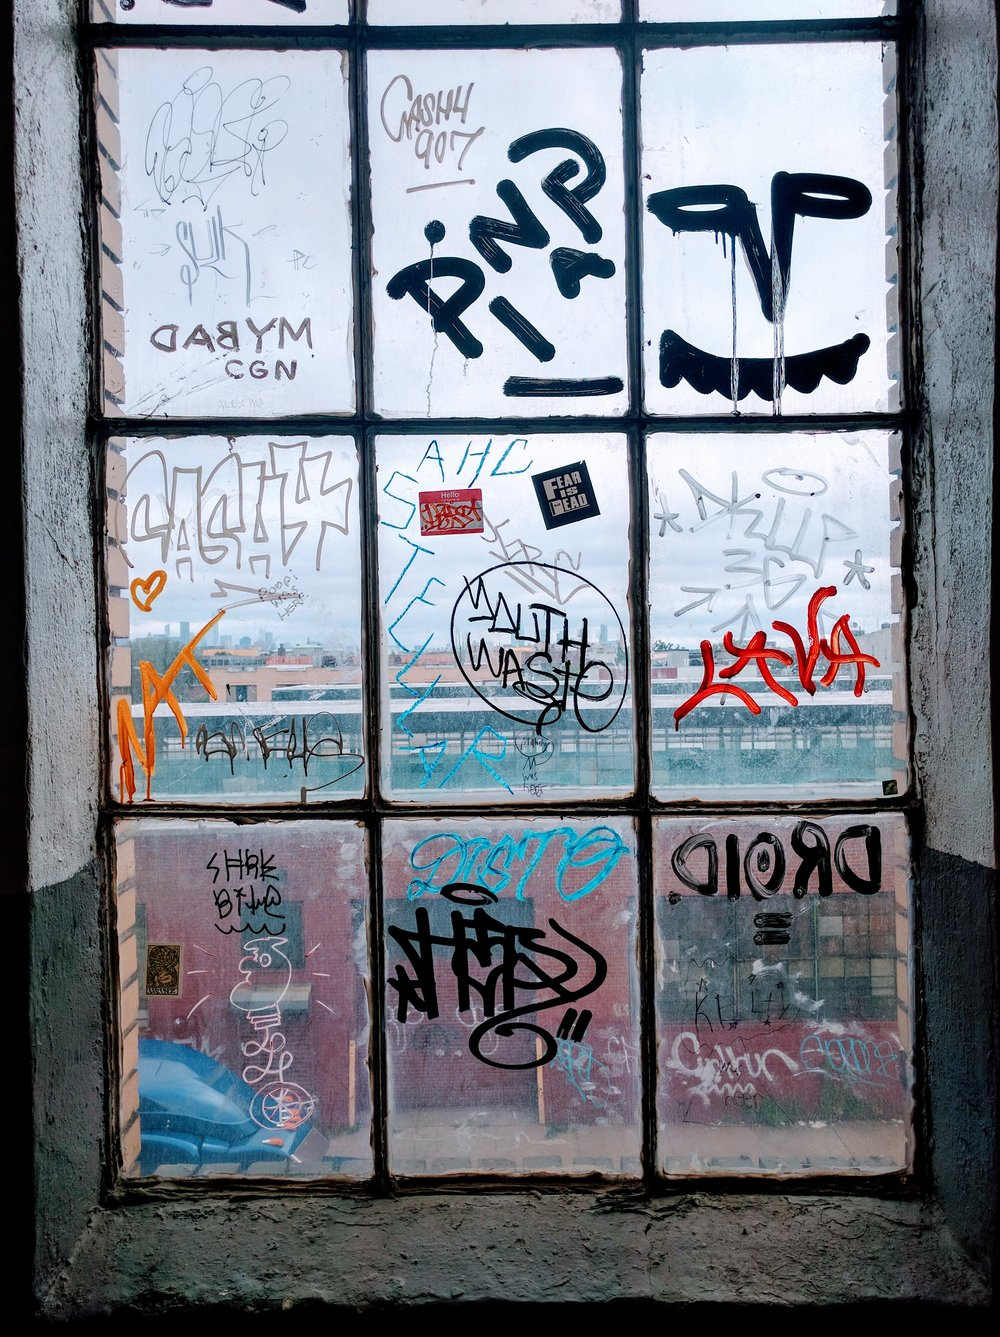 A window in the building of my friend's studio in Bushwick